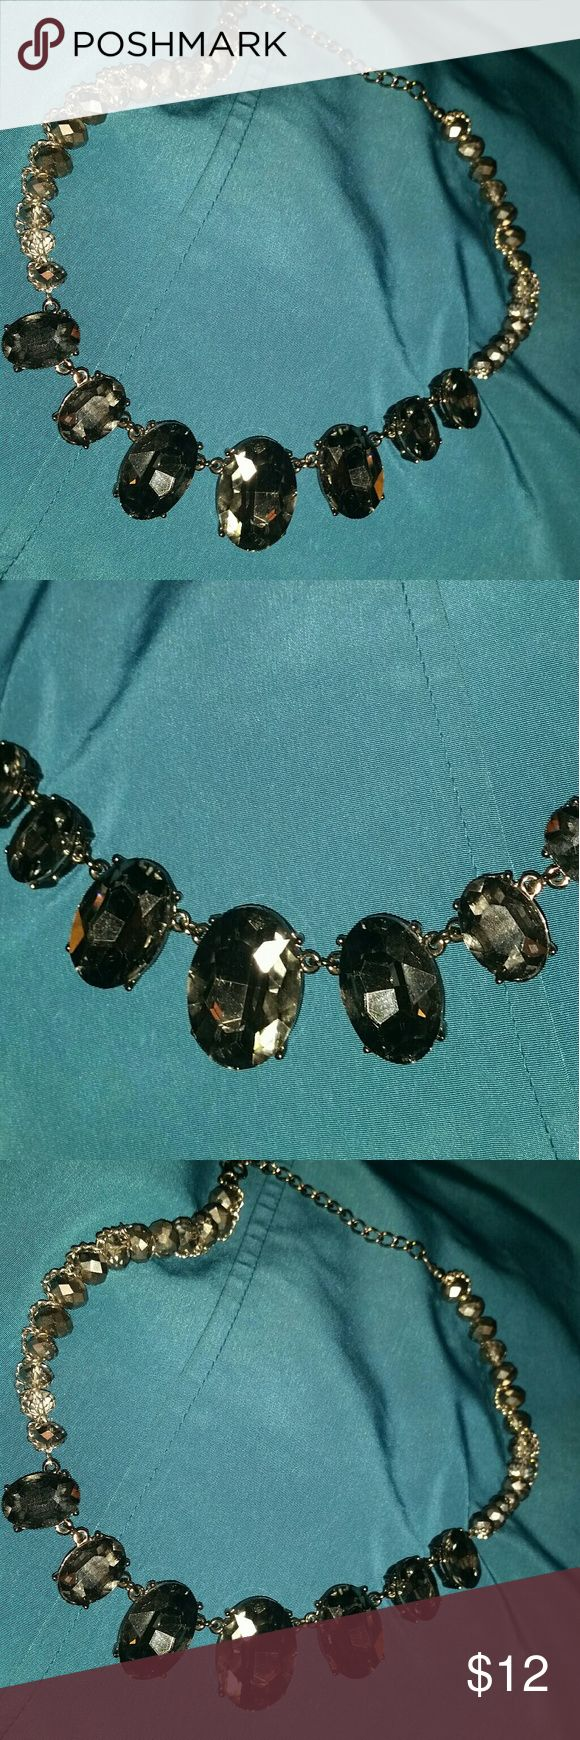 "Mid-Century Style Necklace by Etsy Black Smoke Oval/Gemone Diamond and Silver. Very cool little piece that has that punk chic cool to it.  7 Large Black  Smoke Gemone (Oval/Rosecut) Style Diamond in middle of piece. Smaller size beaded Gemone Diamonds wrapped in Dark Silver Chain. 15"" Jewelry Necklaces"